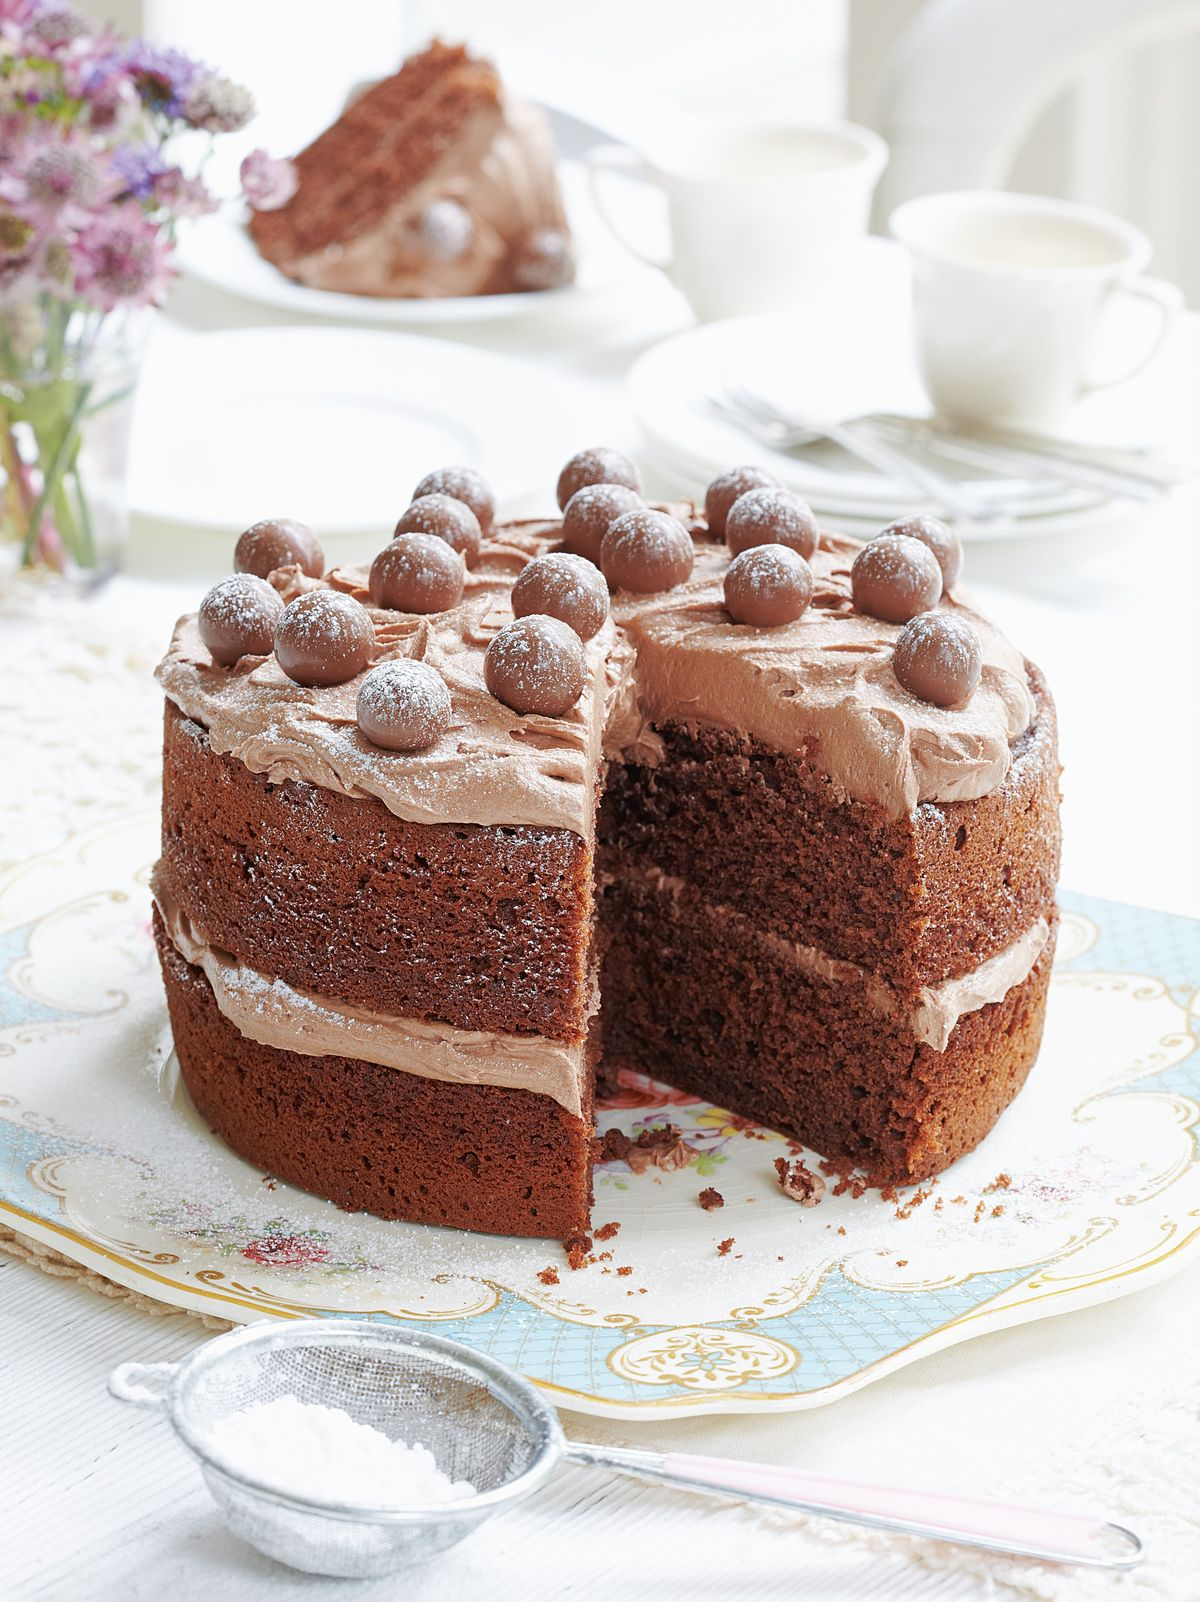 Chocolate Sponge Cake Mary Berry